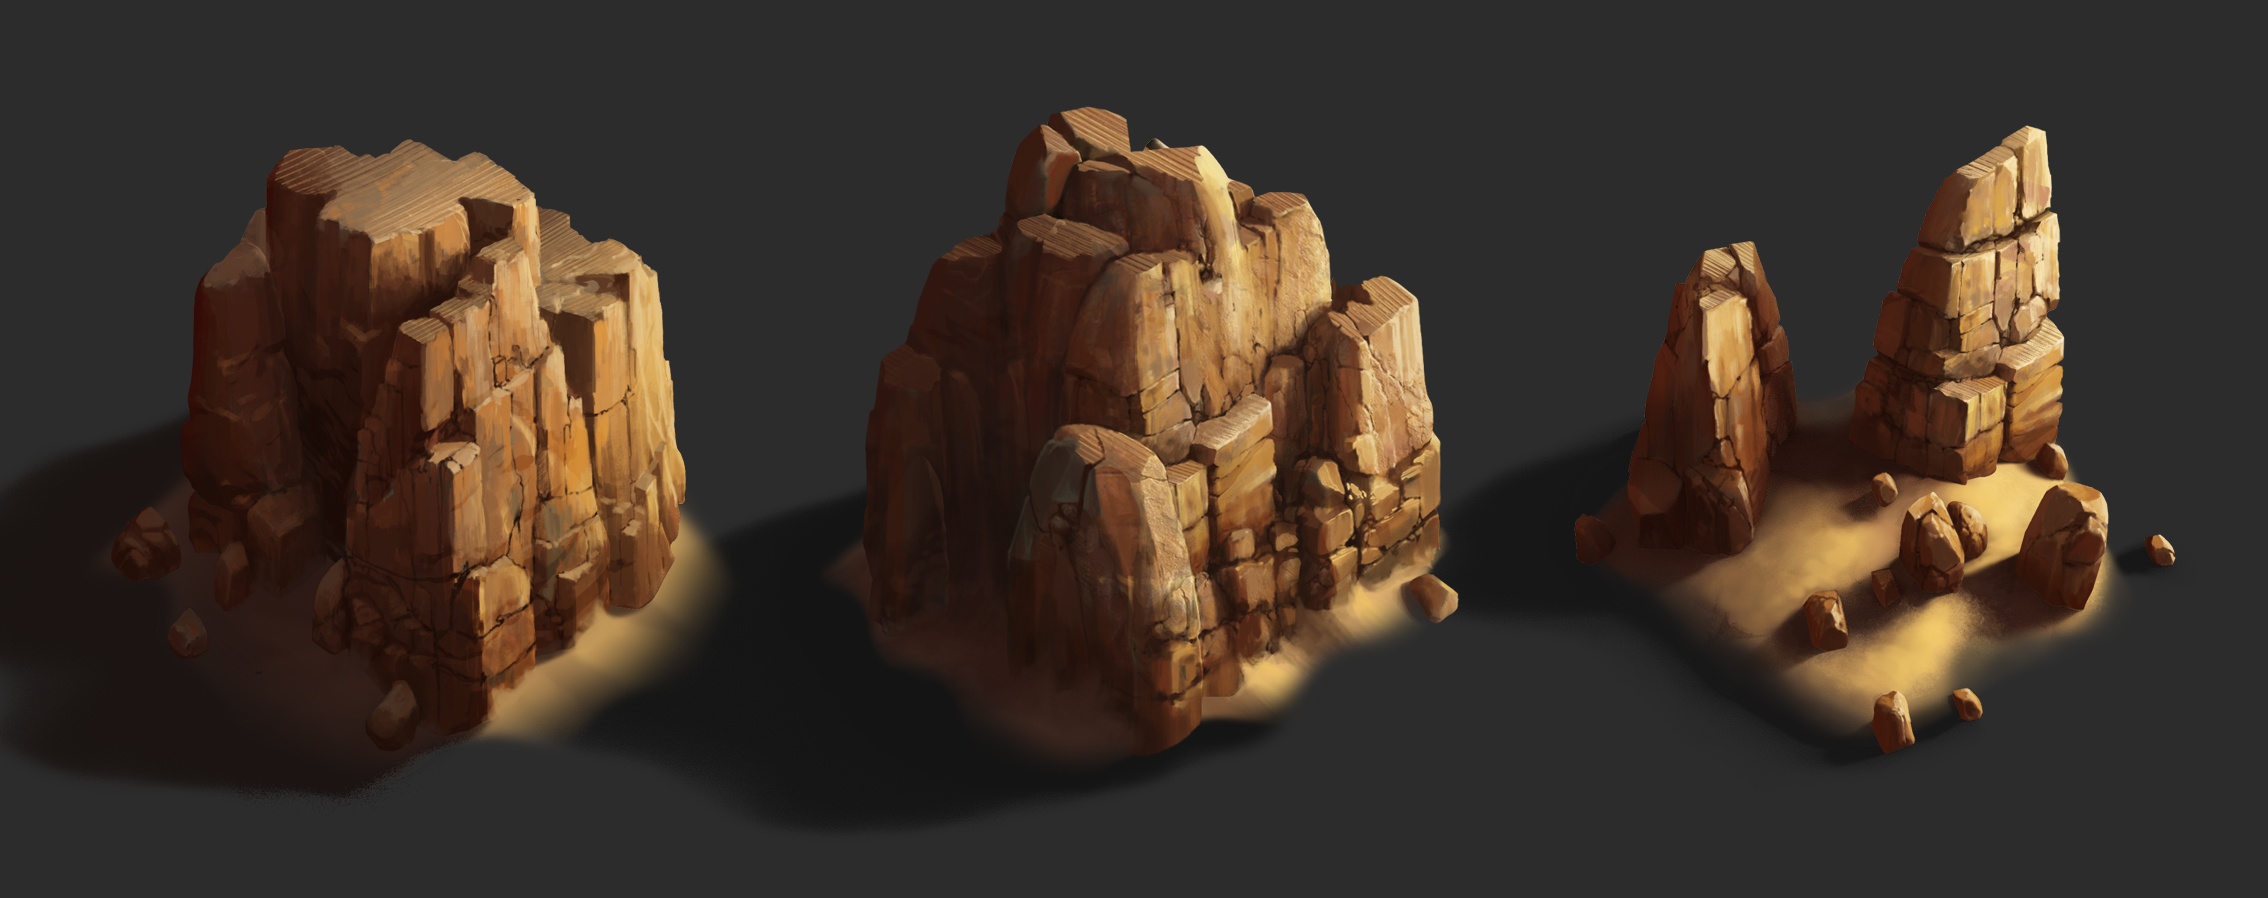 Rock_01 | ✏️2D/3D Environment Artist PRG/Action/RTS/Moba/Isometric